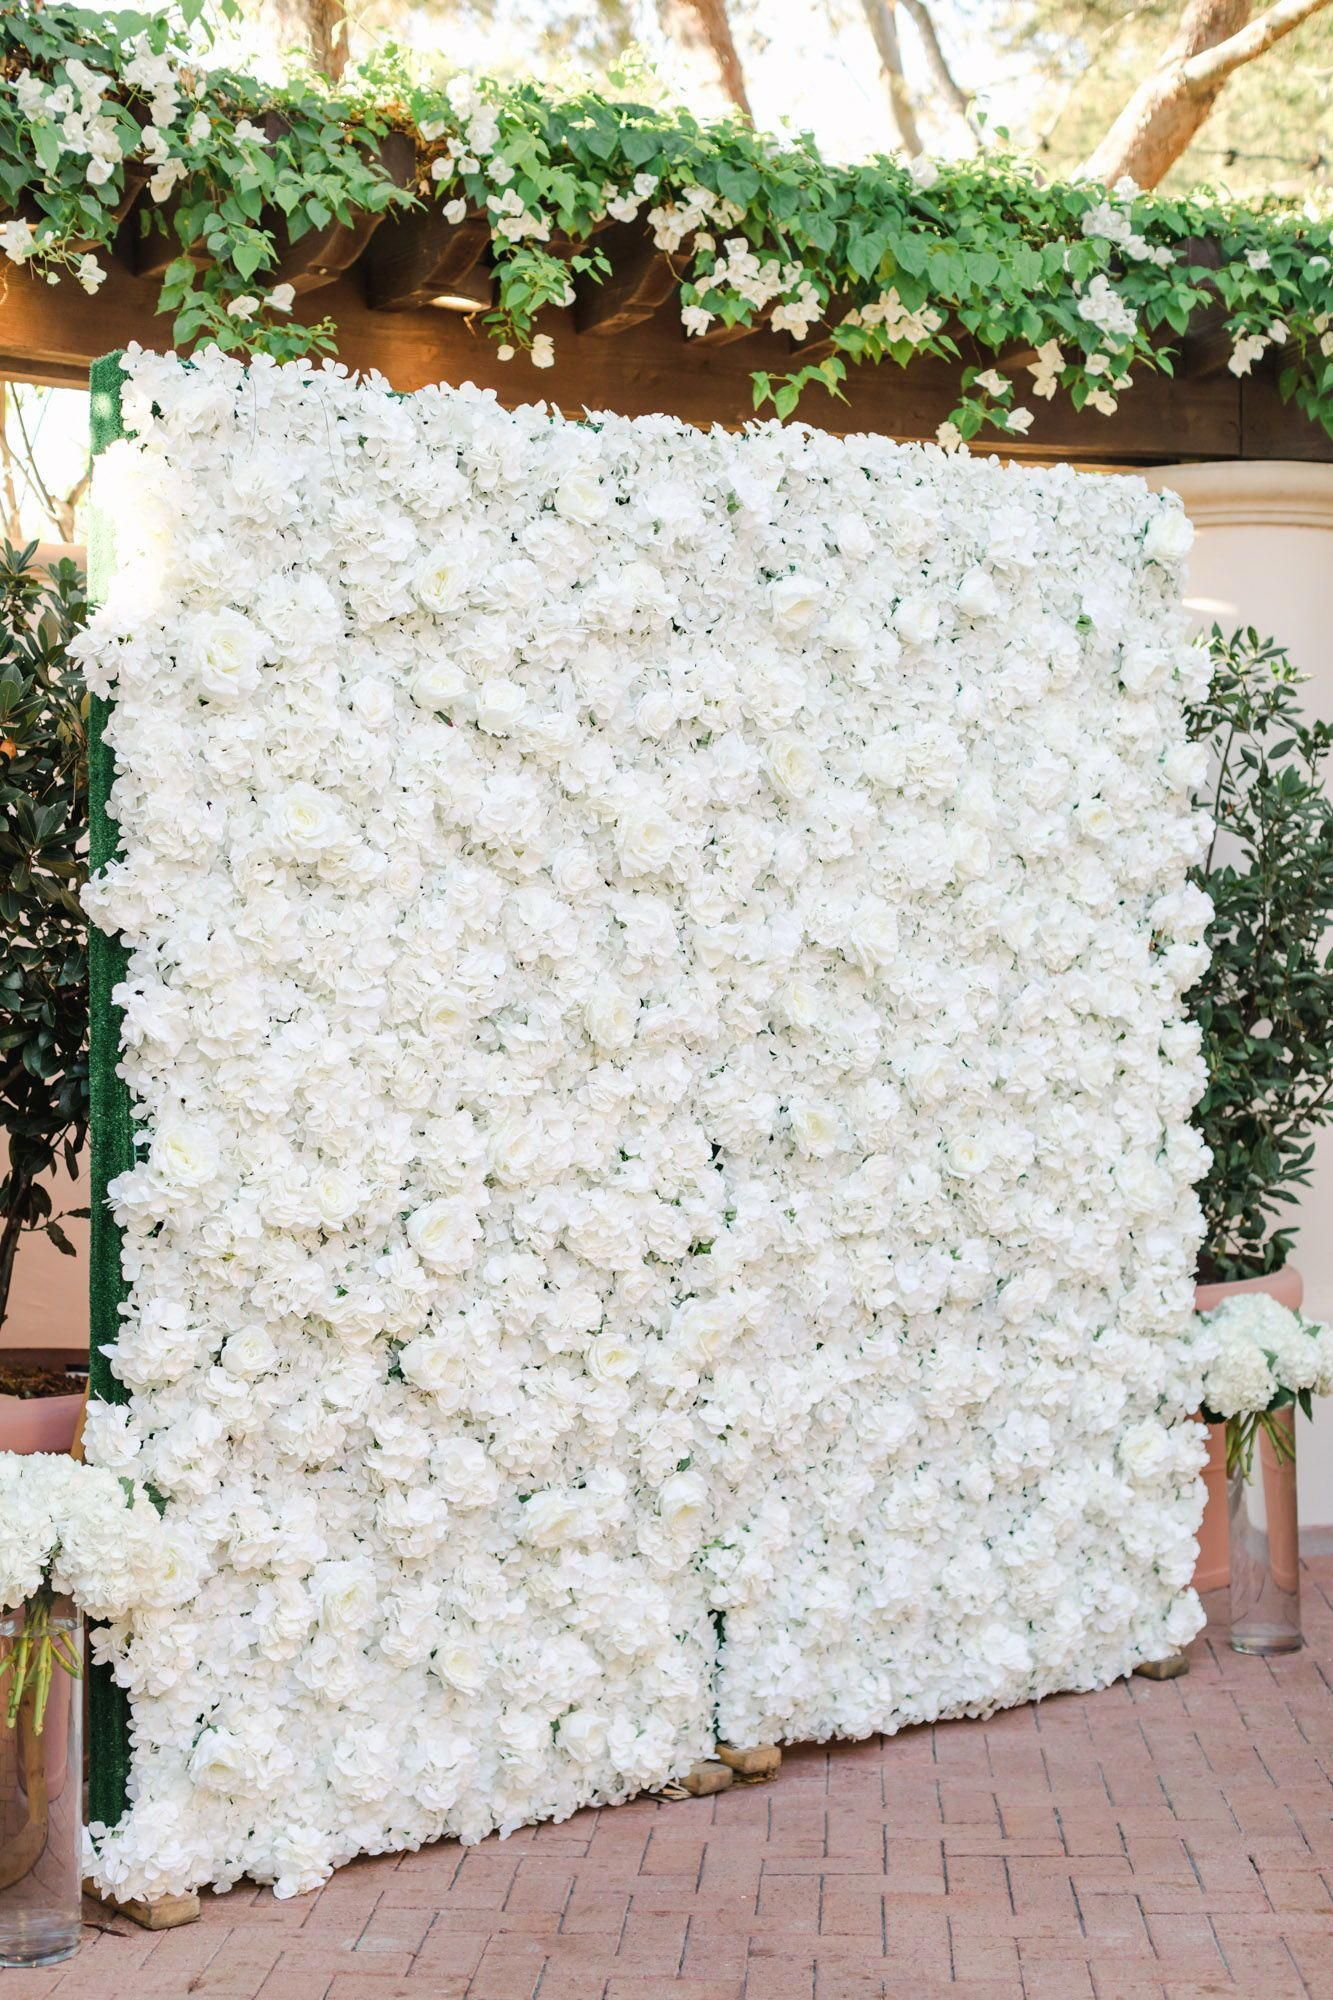 Luxury White Rose And Hydrangea Floral Wall Backdrop For Photos For Cocktail Hour Full Flower Wa Flower Wall Wedding Pelican Hill Wedding Flower Wall Backdrop